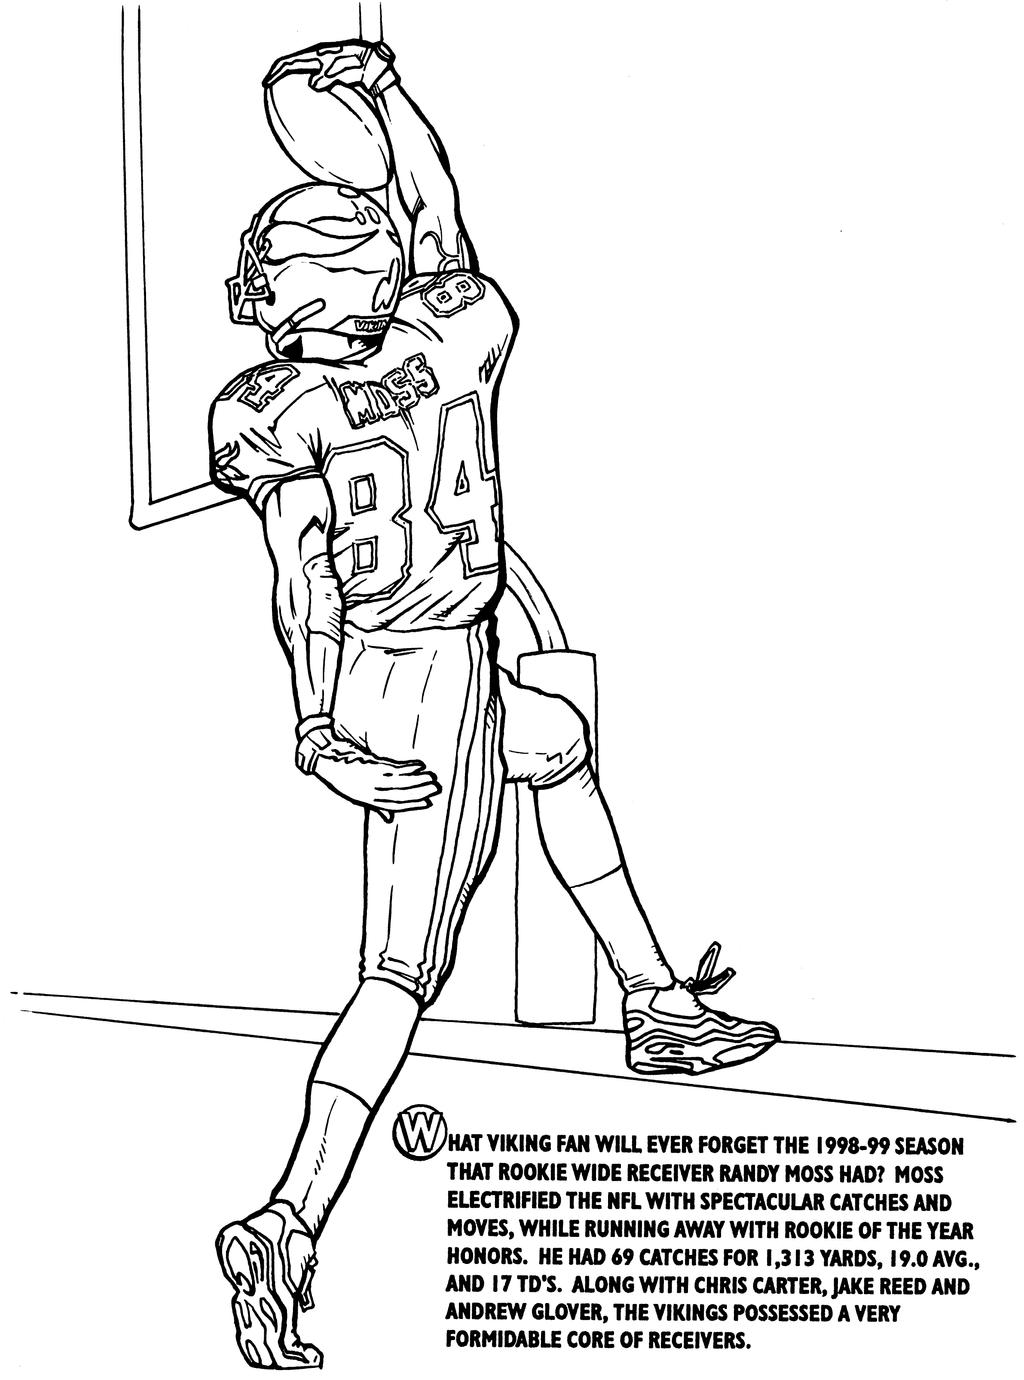 Viking Leif Erikson Coloring Page Coloring Pages Minnesota Vikings Coloring Pages